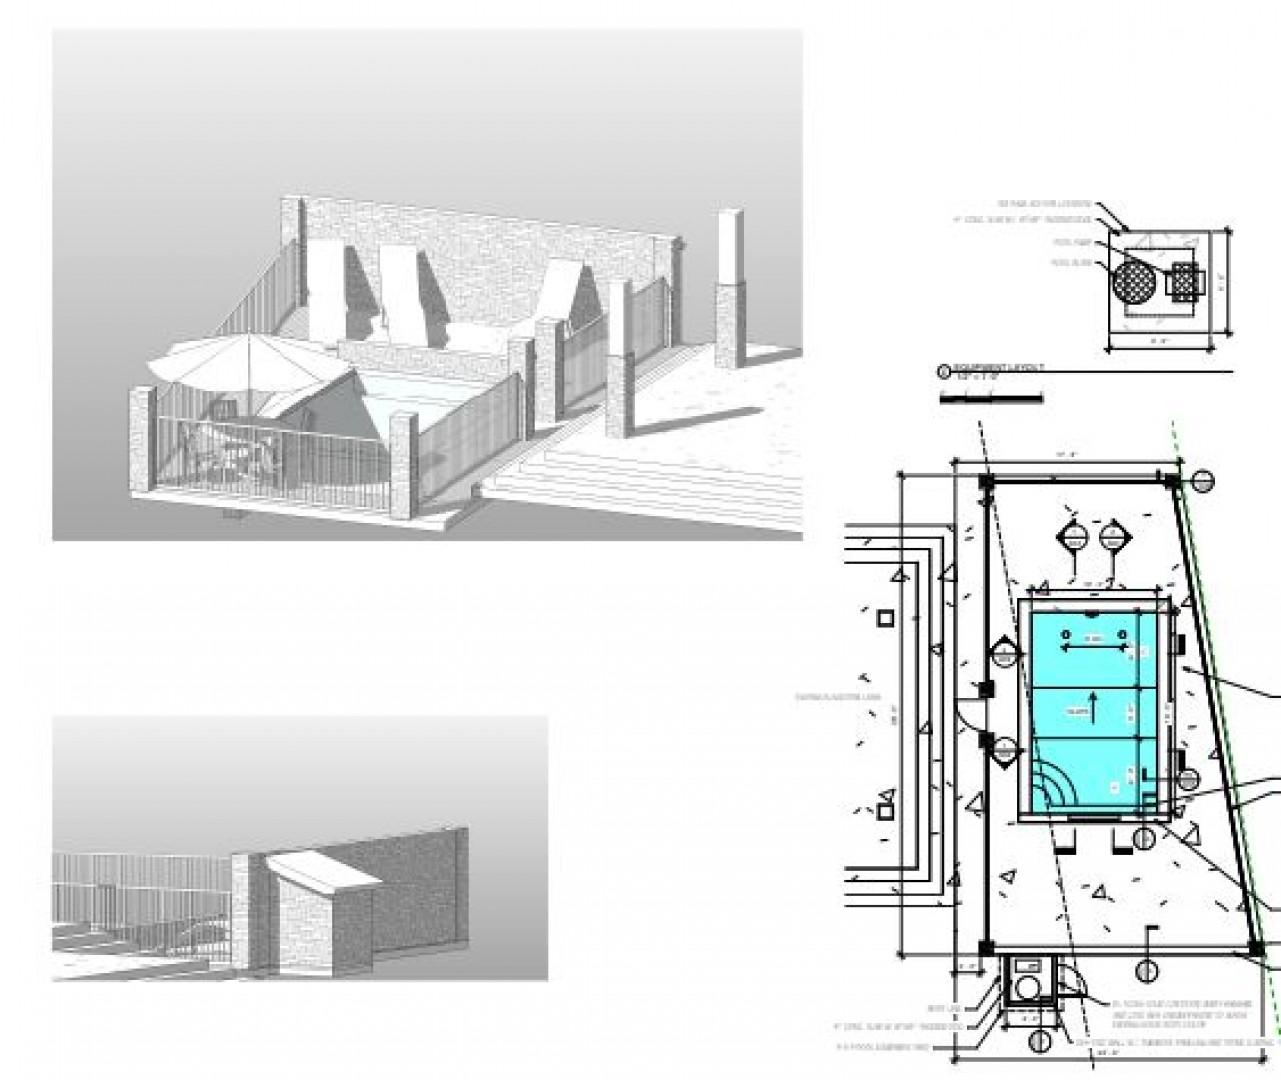 Plans for the brand-new pool